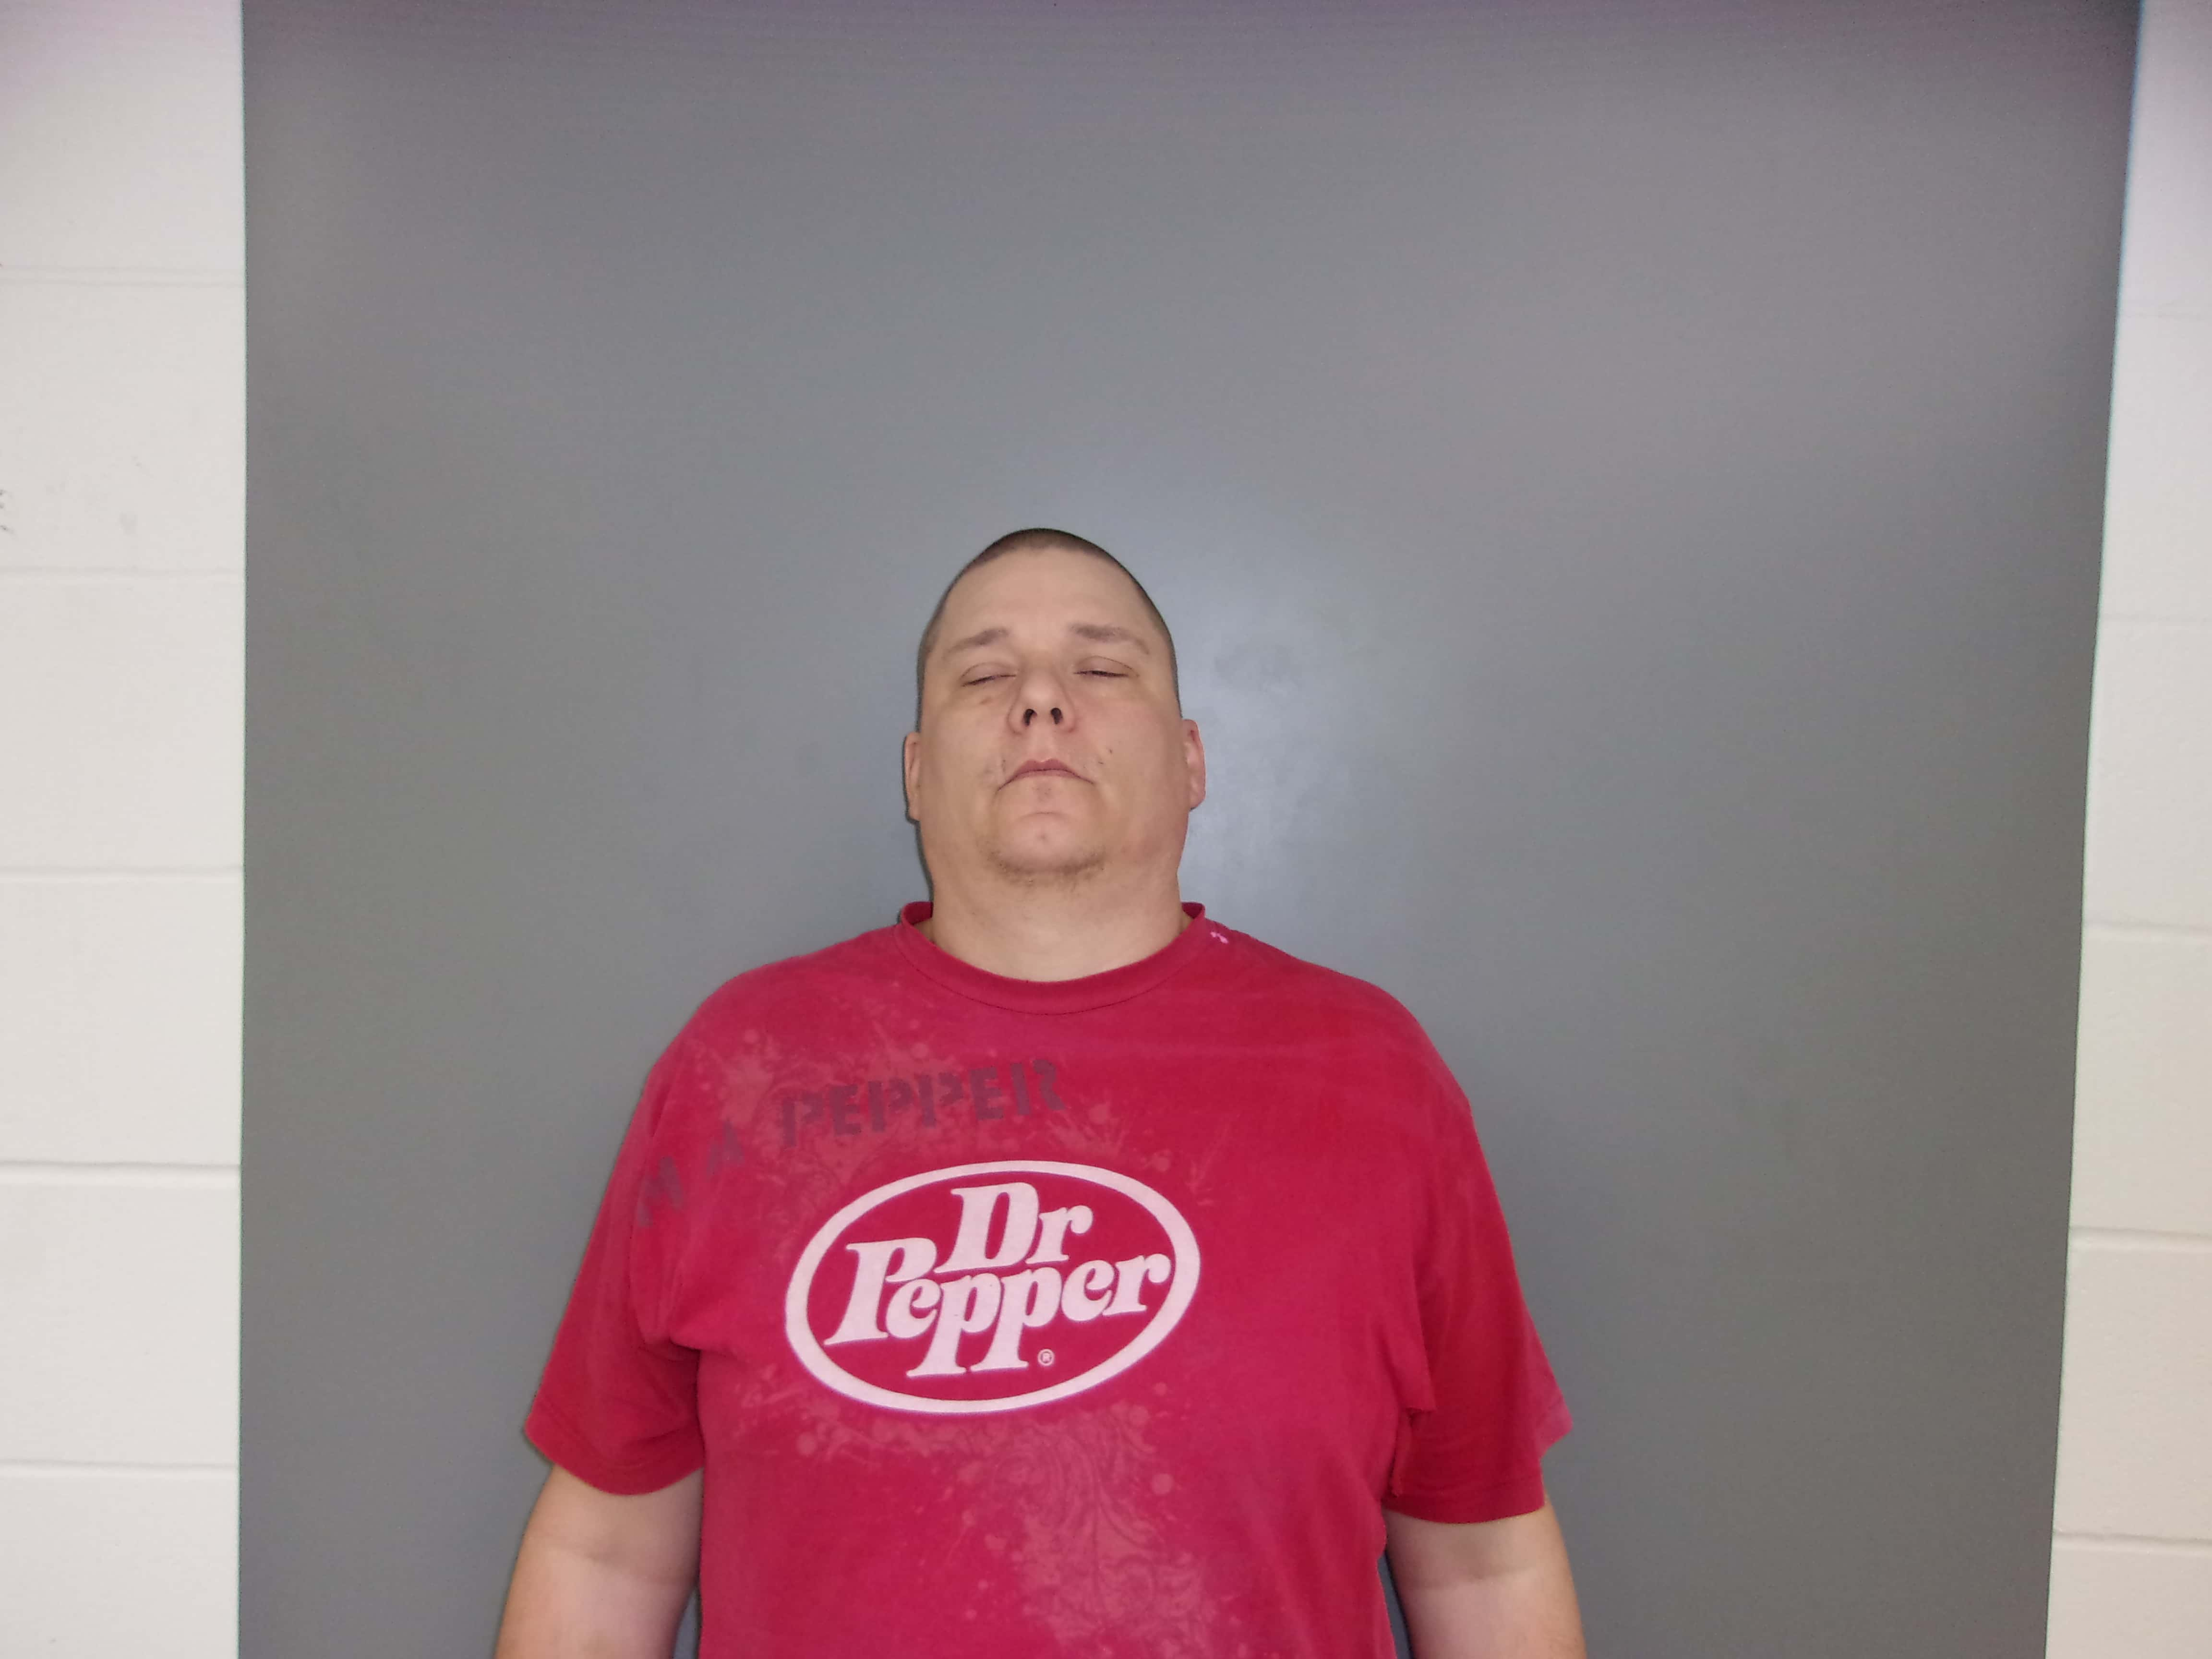 A Melcher Dallas Man Was Arrested For Abandonment Neglect Of Dependent Person Monday